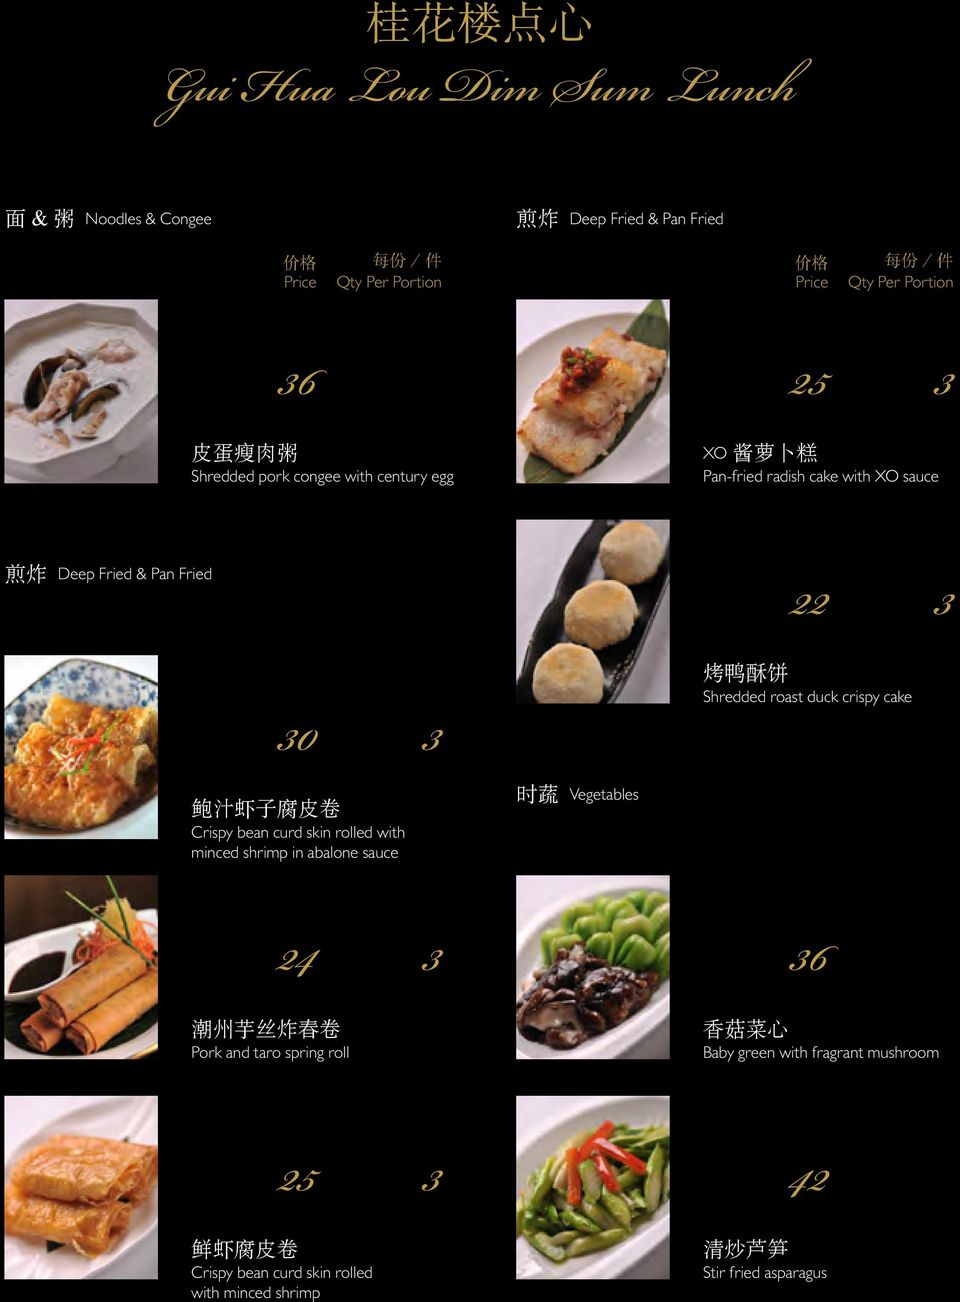 Shredded roast duck crispy cake 鲍 汁 虾 子 腐 皮 卷 Crispy bean curd skin rolled with minced shrimp in abalone sauce 时 蔬 Vegetables 24 3 36 潮 州 芋 丝 炸 春 卷